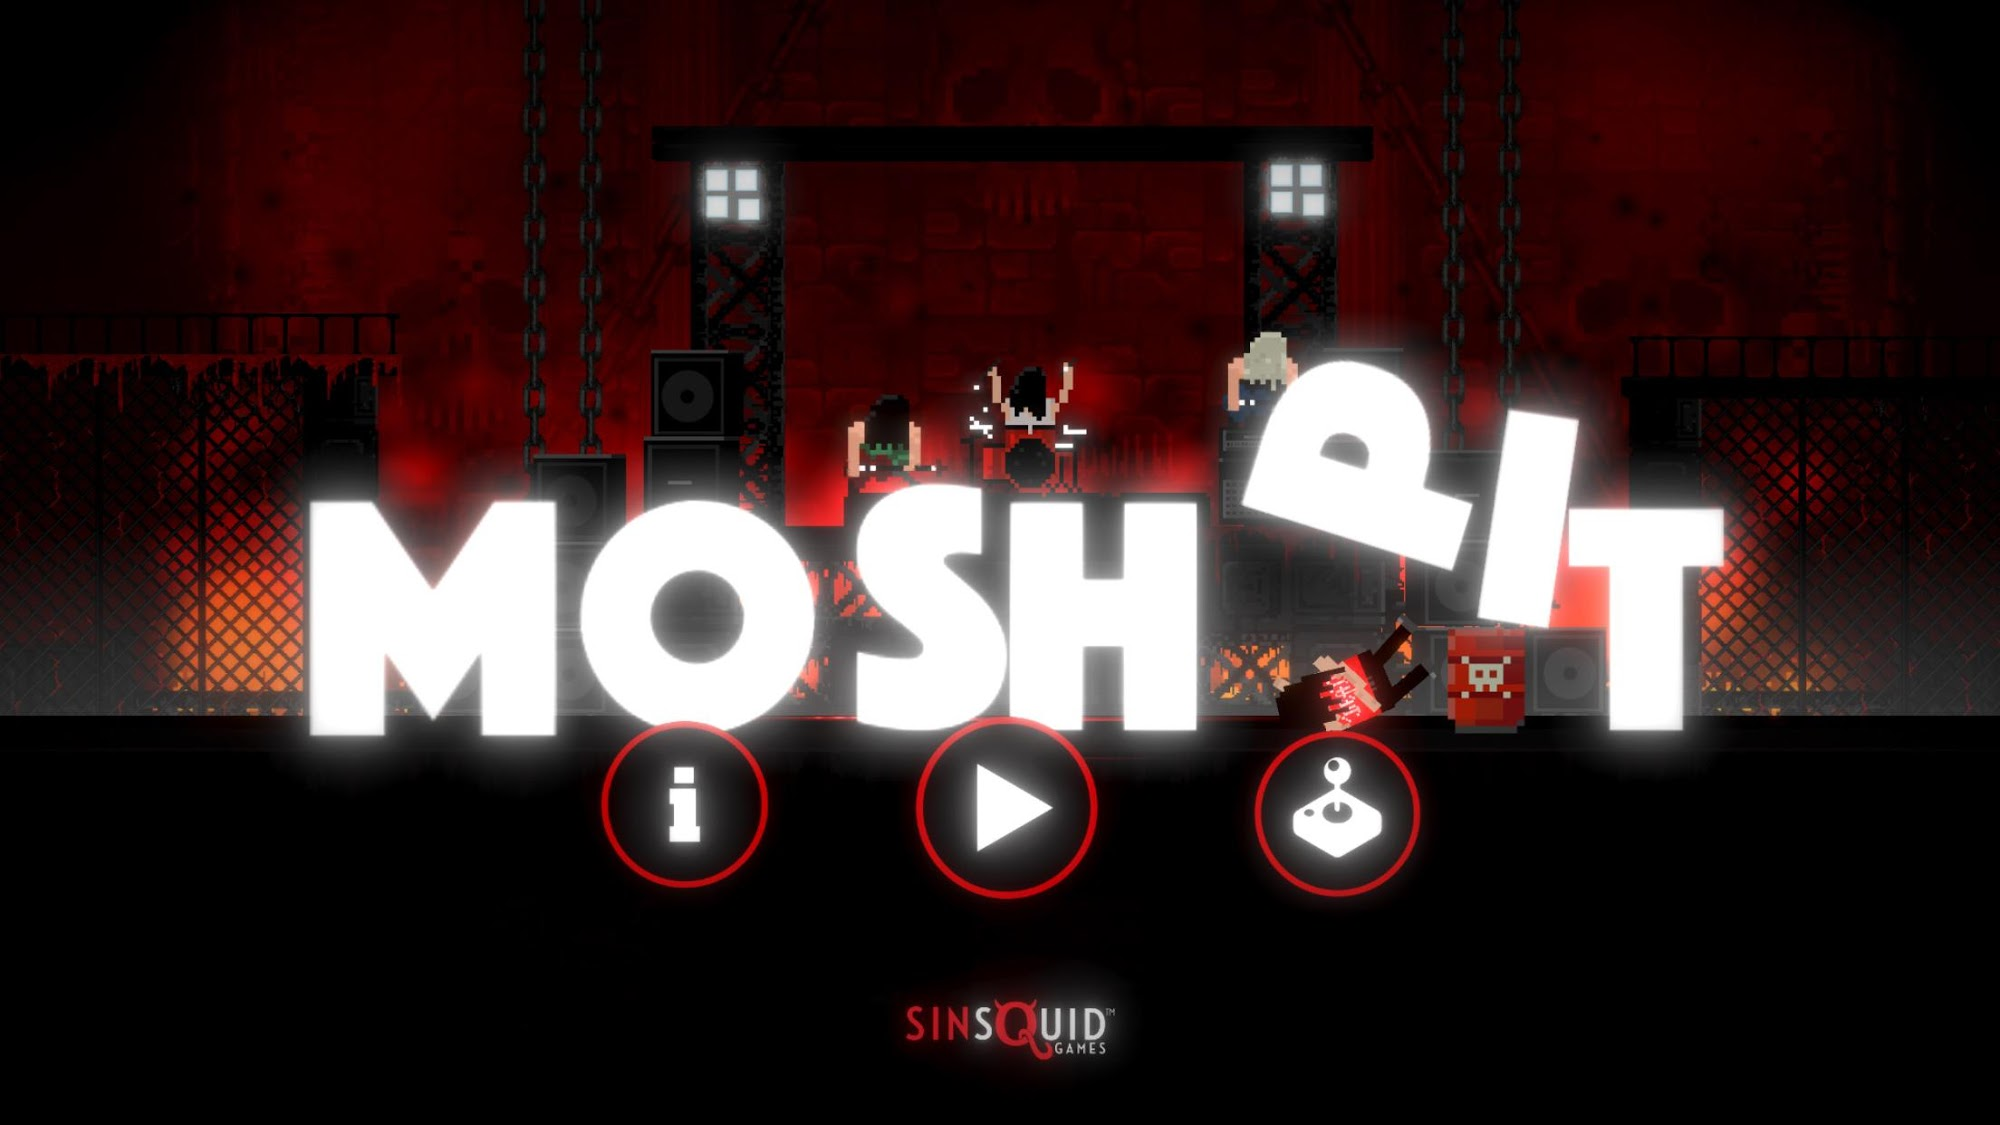 Moshpit - Heavy Metal is war screenshot 1